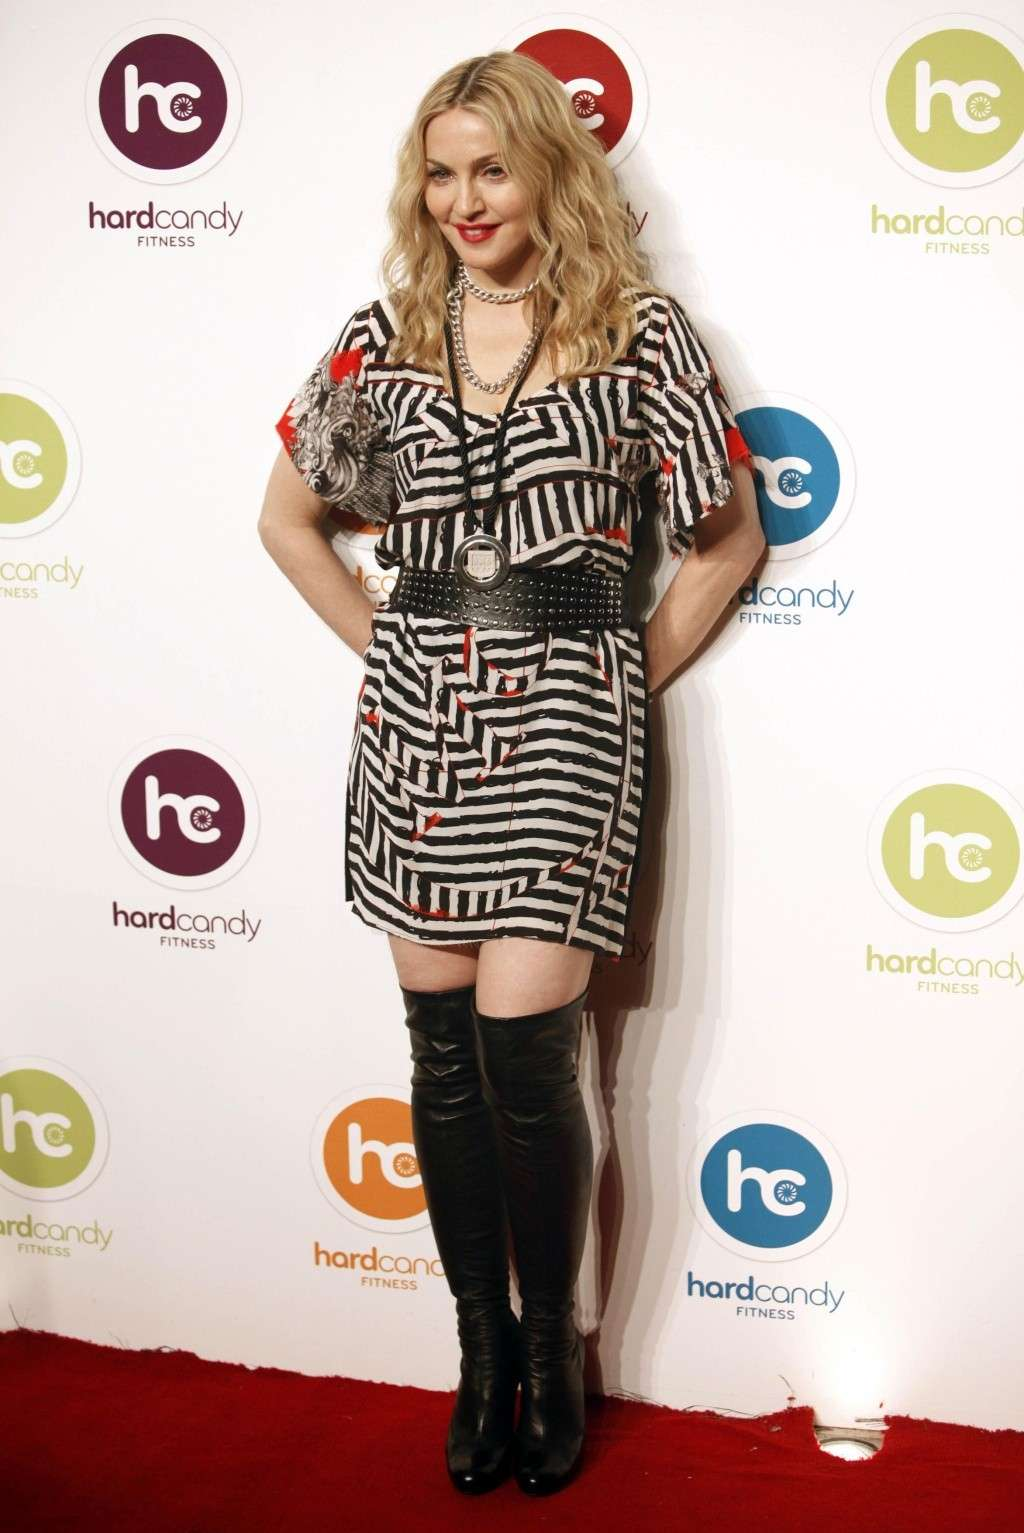 Nov 29, 2010 - Madonna - At the opening of the first Hard Candy Fitness Center in Mexico Forum_65